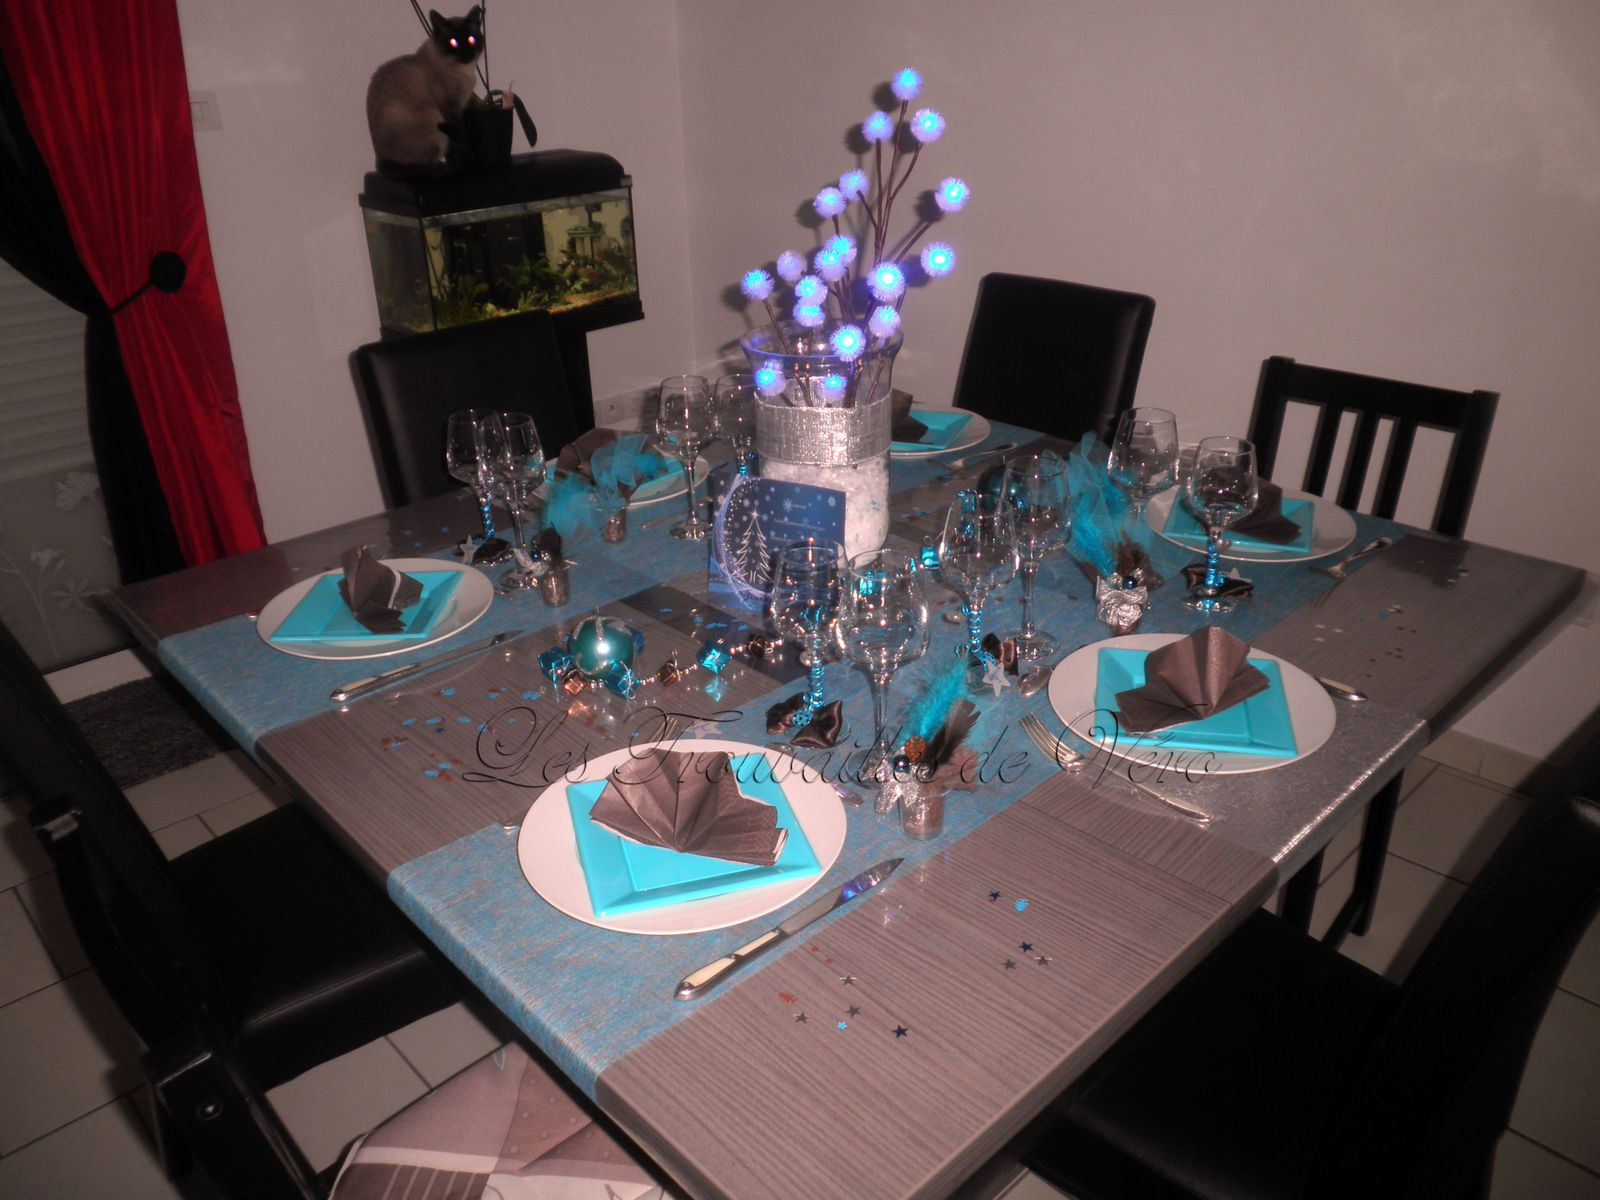 Le plus efficace 6265 decoration de table pour noel bleu for Deco table noel bleu et blanc